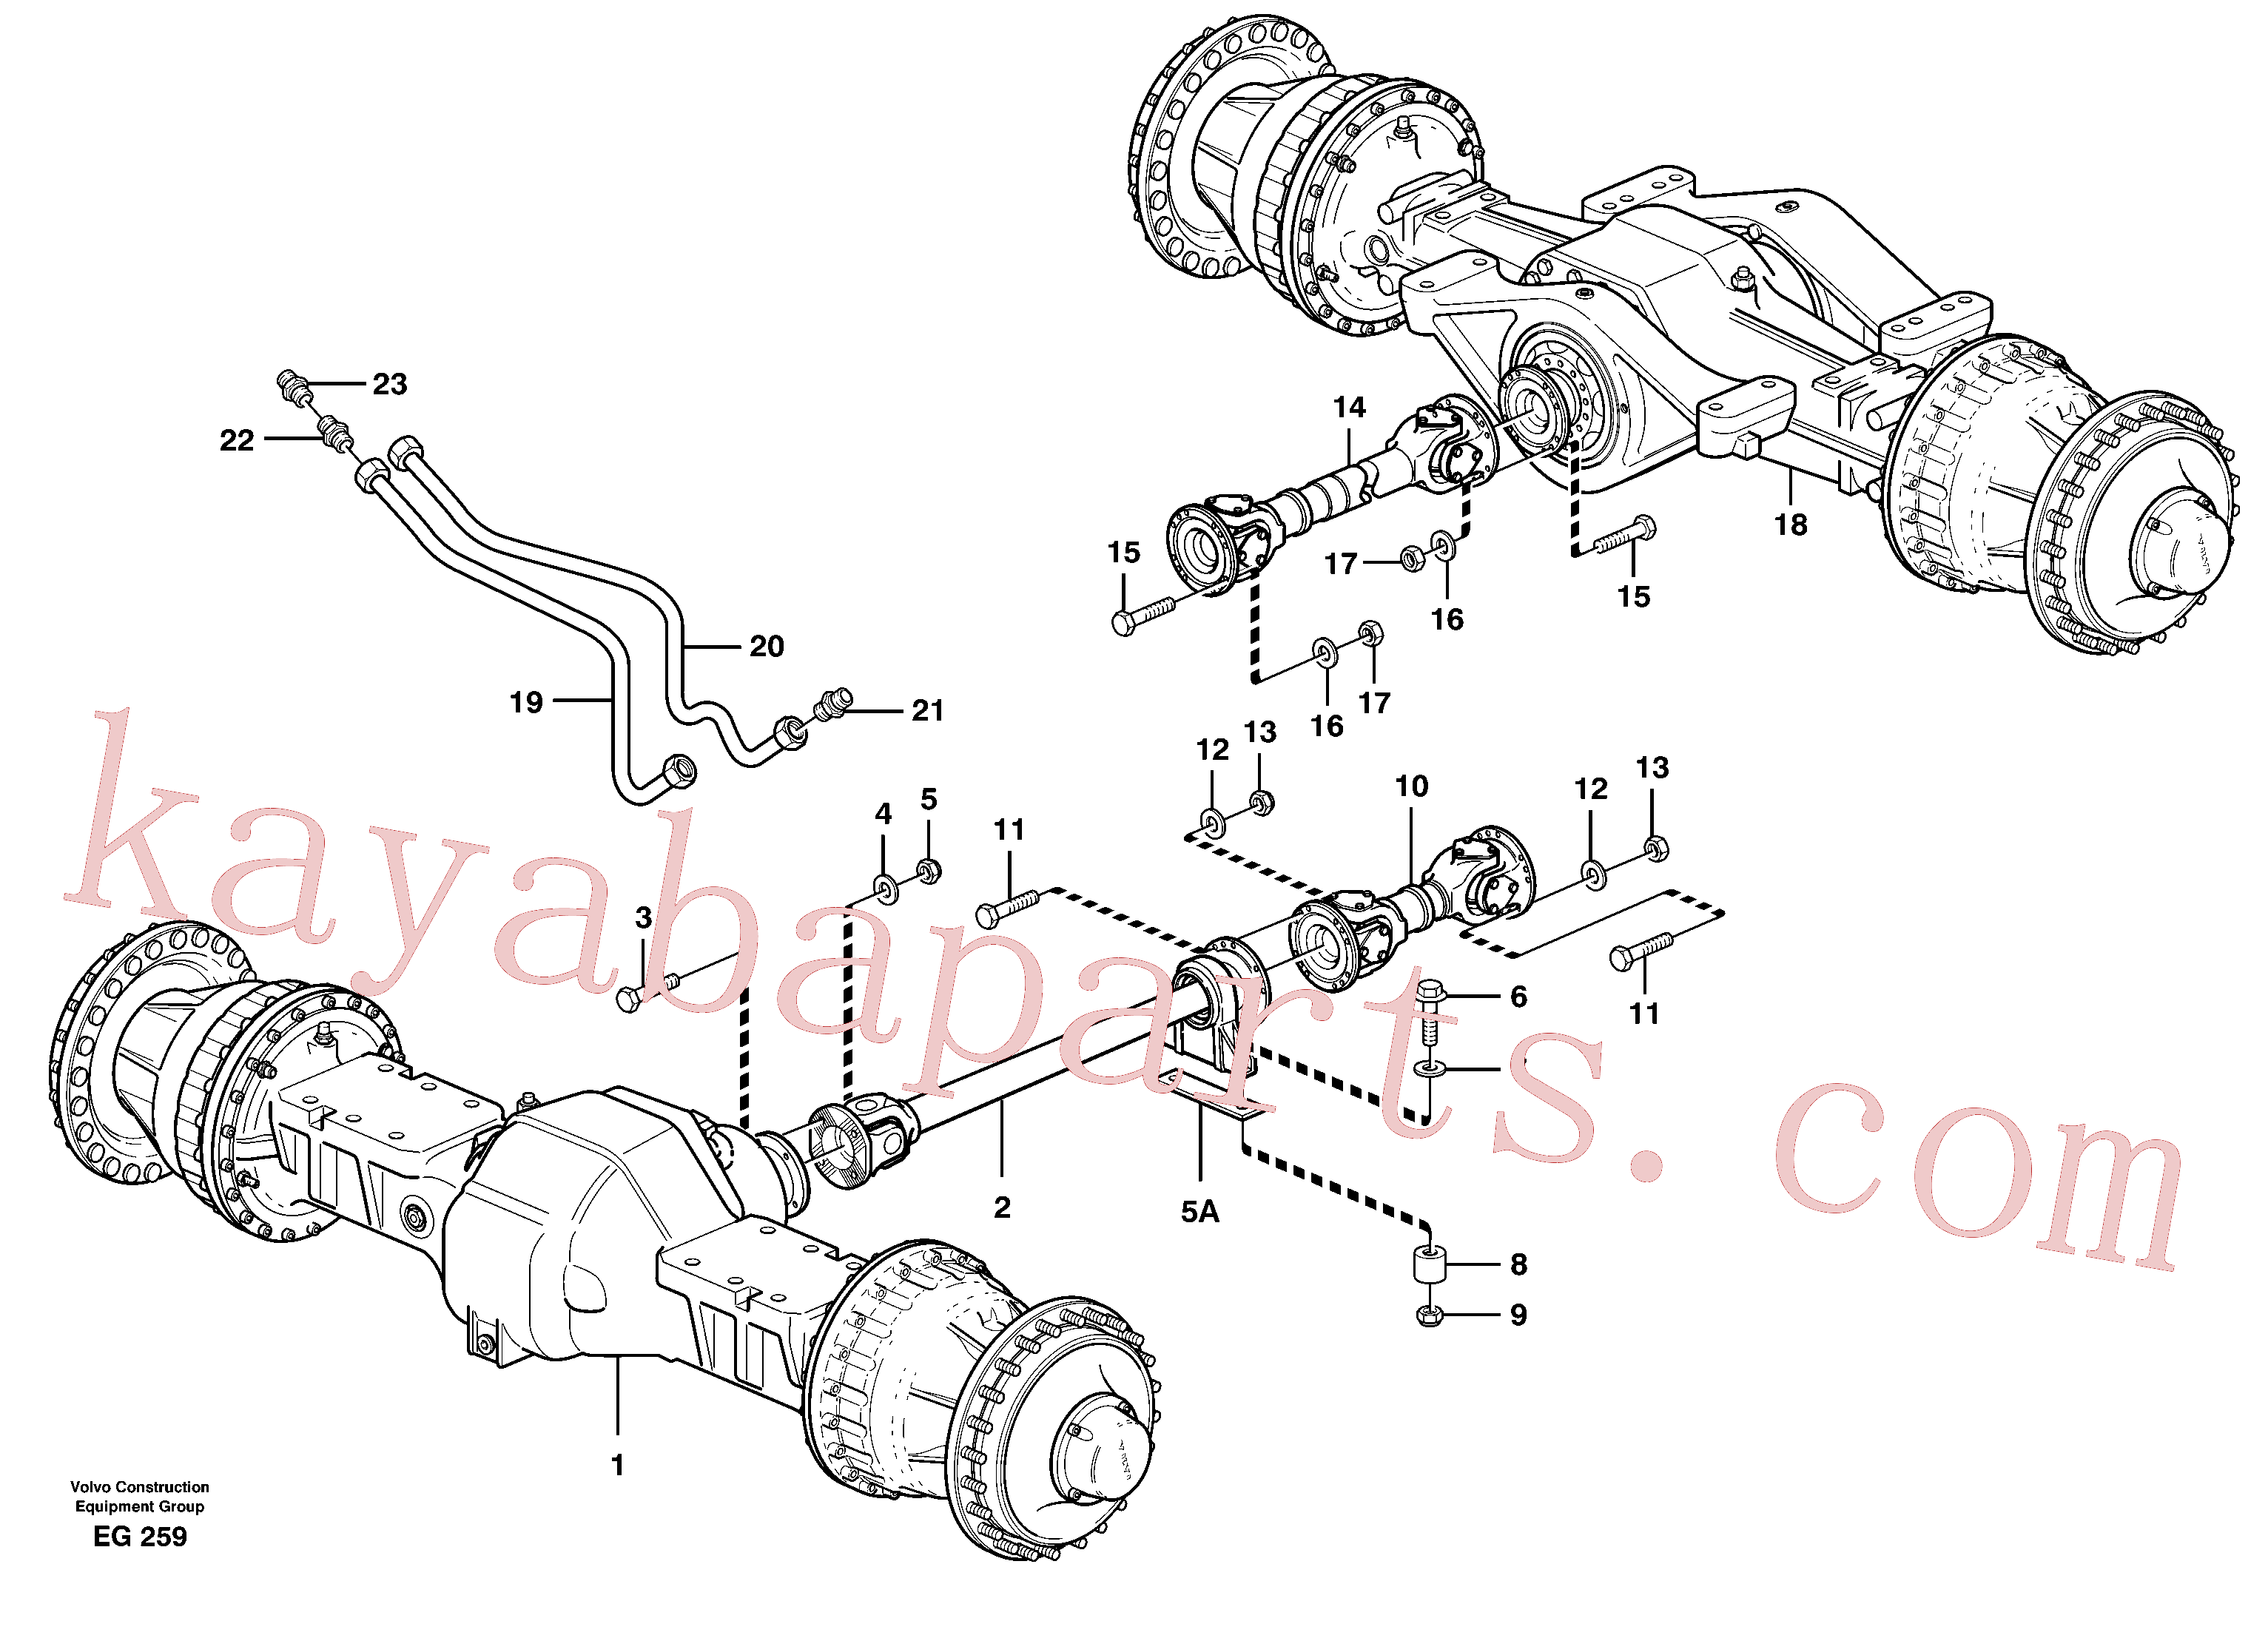 VOE11026356 for Volvo Propeller shafts with fitting parts(EG259 assembly)